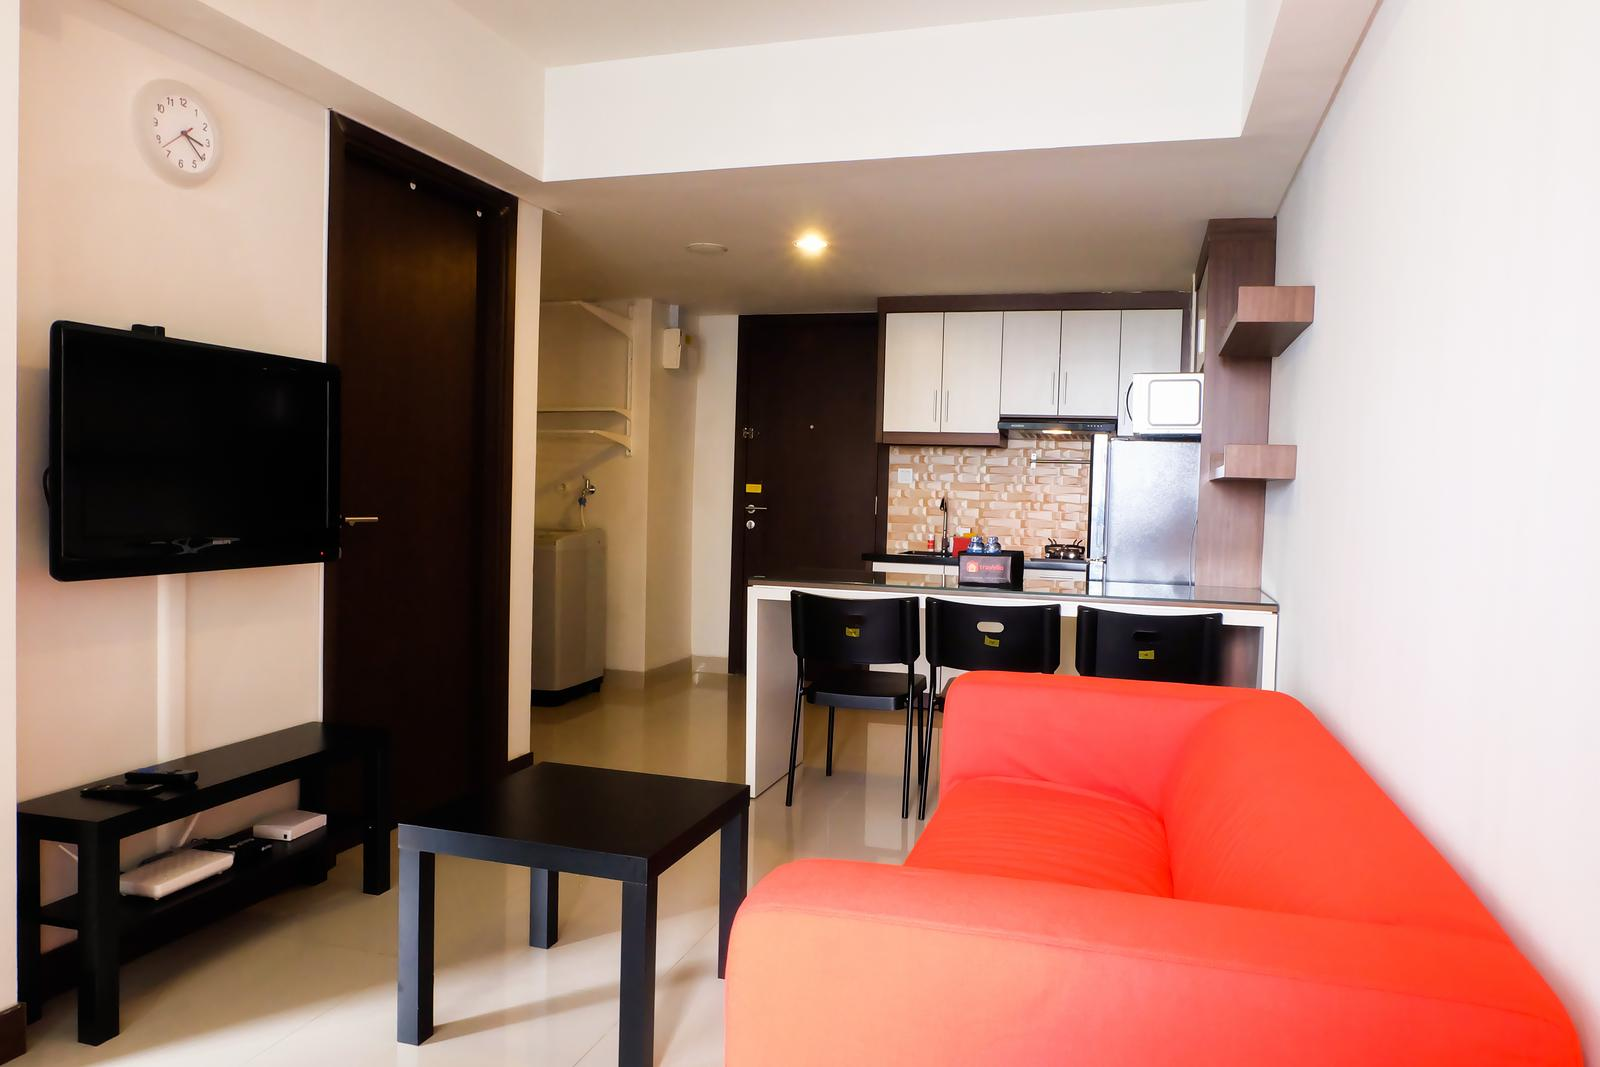 H Residence - 2BR Best Location The H Residence Apartment By Travelio